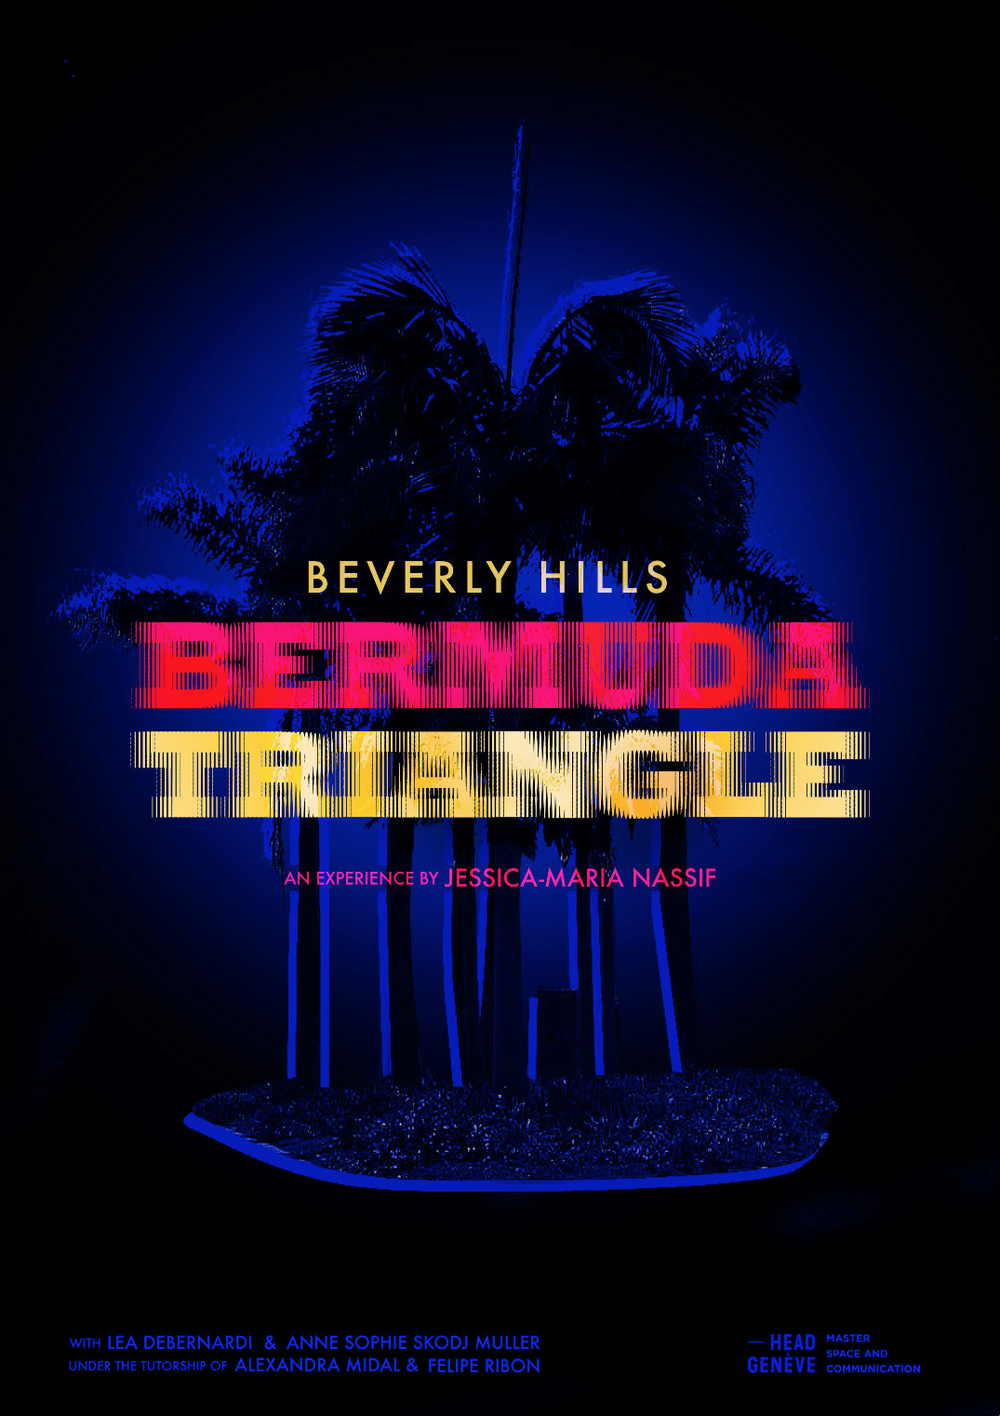 Beverly Hills Bermuda Triangle-POSTER 2.png